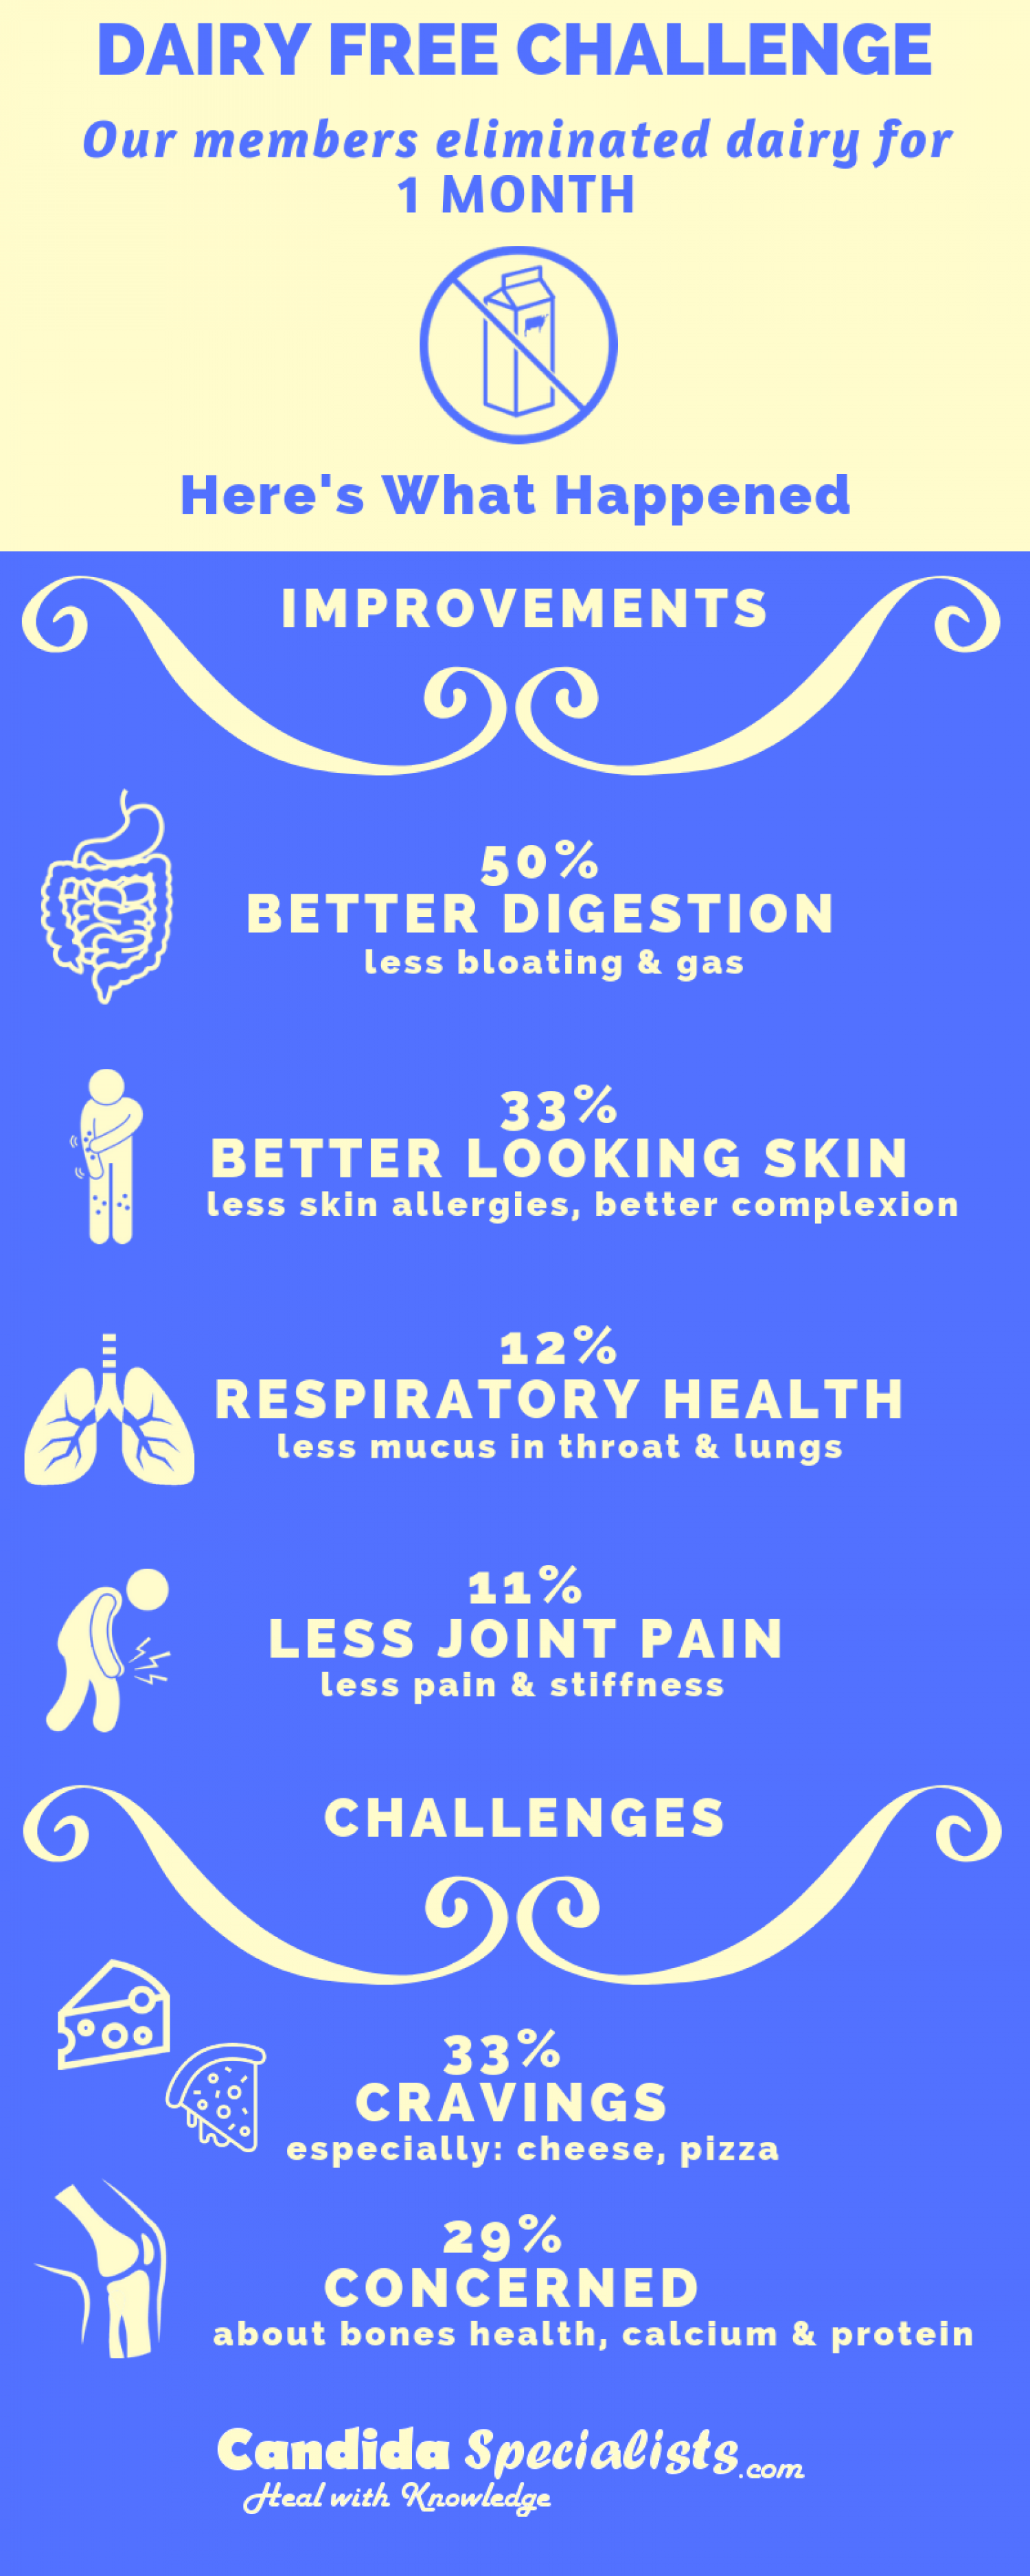 Dairy Free Diet : One Month Results, Benefits & Concerns (Infographic)  Infographic